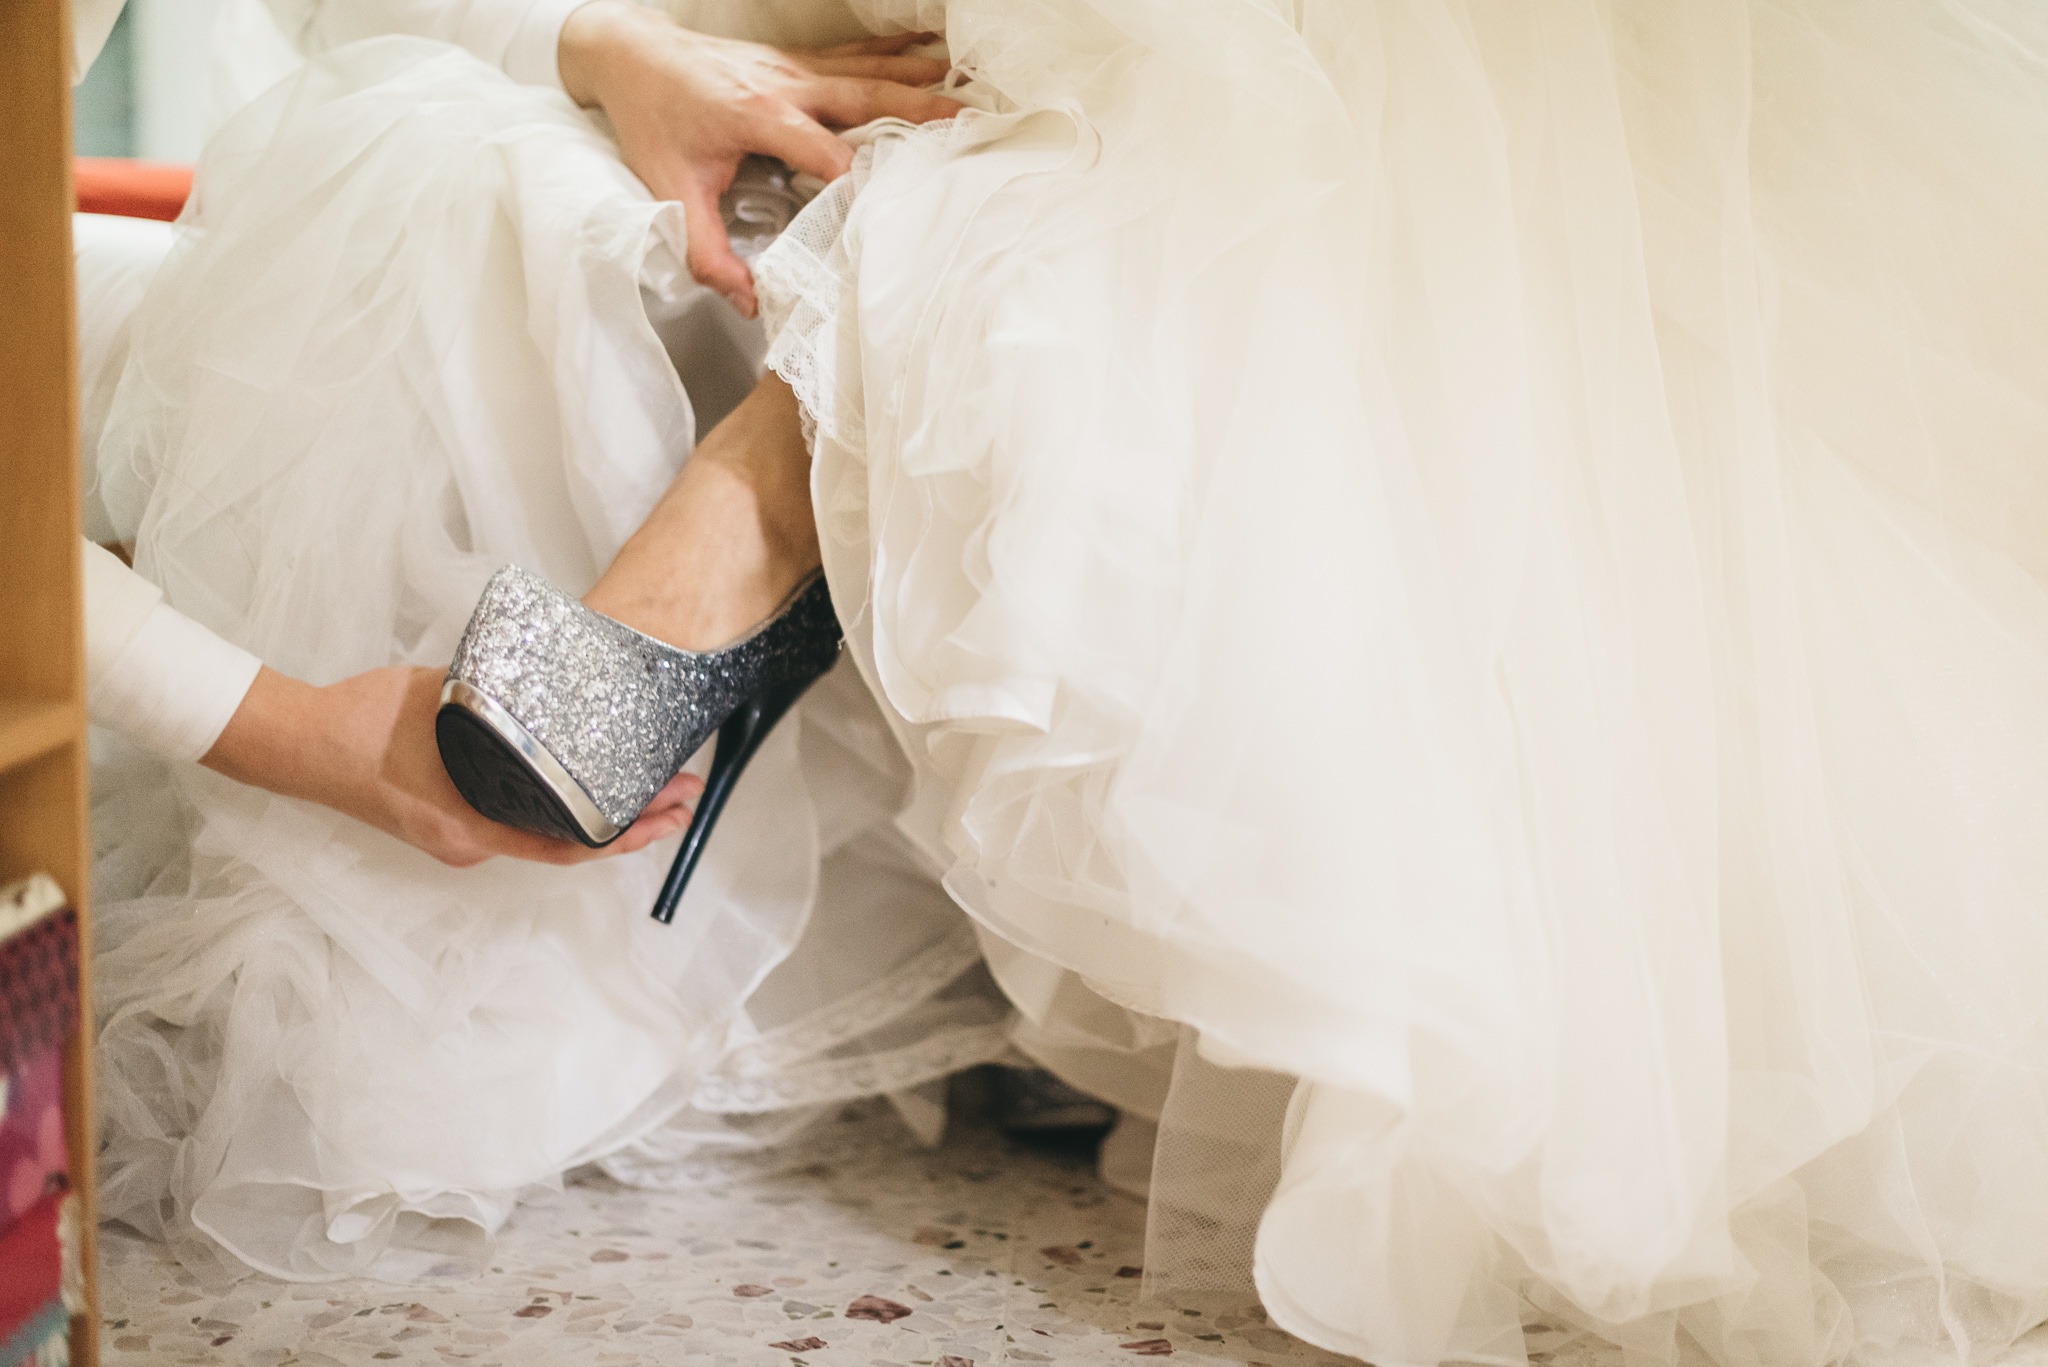 Fiona & Terence Wedding Day Highlights (resized for sharing) - 117.jpg